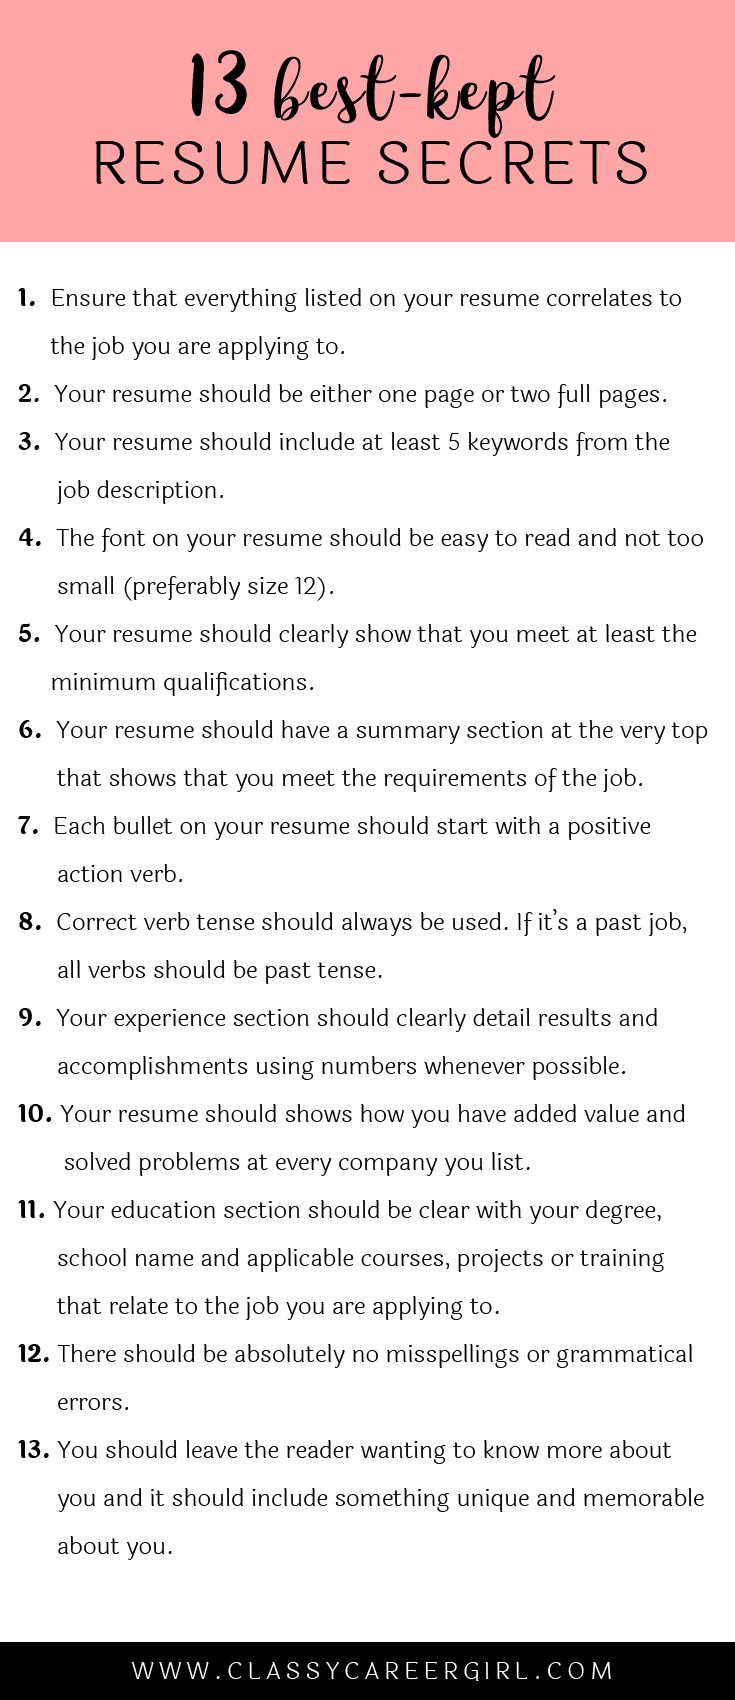 Opposenewapstandardsus  Pretty  Ideas About Resume On Pinterest  Cv Format Resume Cv And  With Heavenly Some Hiring Managers Will Toss Your Resume Out If You Dont Know These  With Beauteous Bartender Resume Example Also Best Professional Resume Writers In Addition The Best Resume Template And Example Of Great Resume As Well As Nursing Objective For Resume Additionally Elementary Teacher Resume Sample From Pinterestcom With Opposenewapstandardsus  Heavenly  Ideas About Resume On Pinterest  Cv Format Resume Cv And  With Beauteous Some Hiring Managers Will Toss Your Resume Out If You Dont Know These  And Pretty Bartender Resume Example Also Best Professional Resume Writers In Addition The Best Resume Template From Pinterestcom